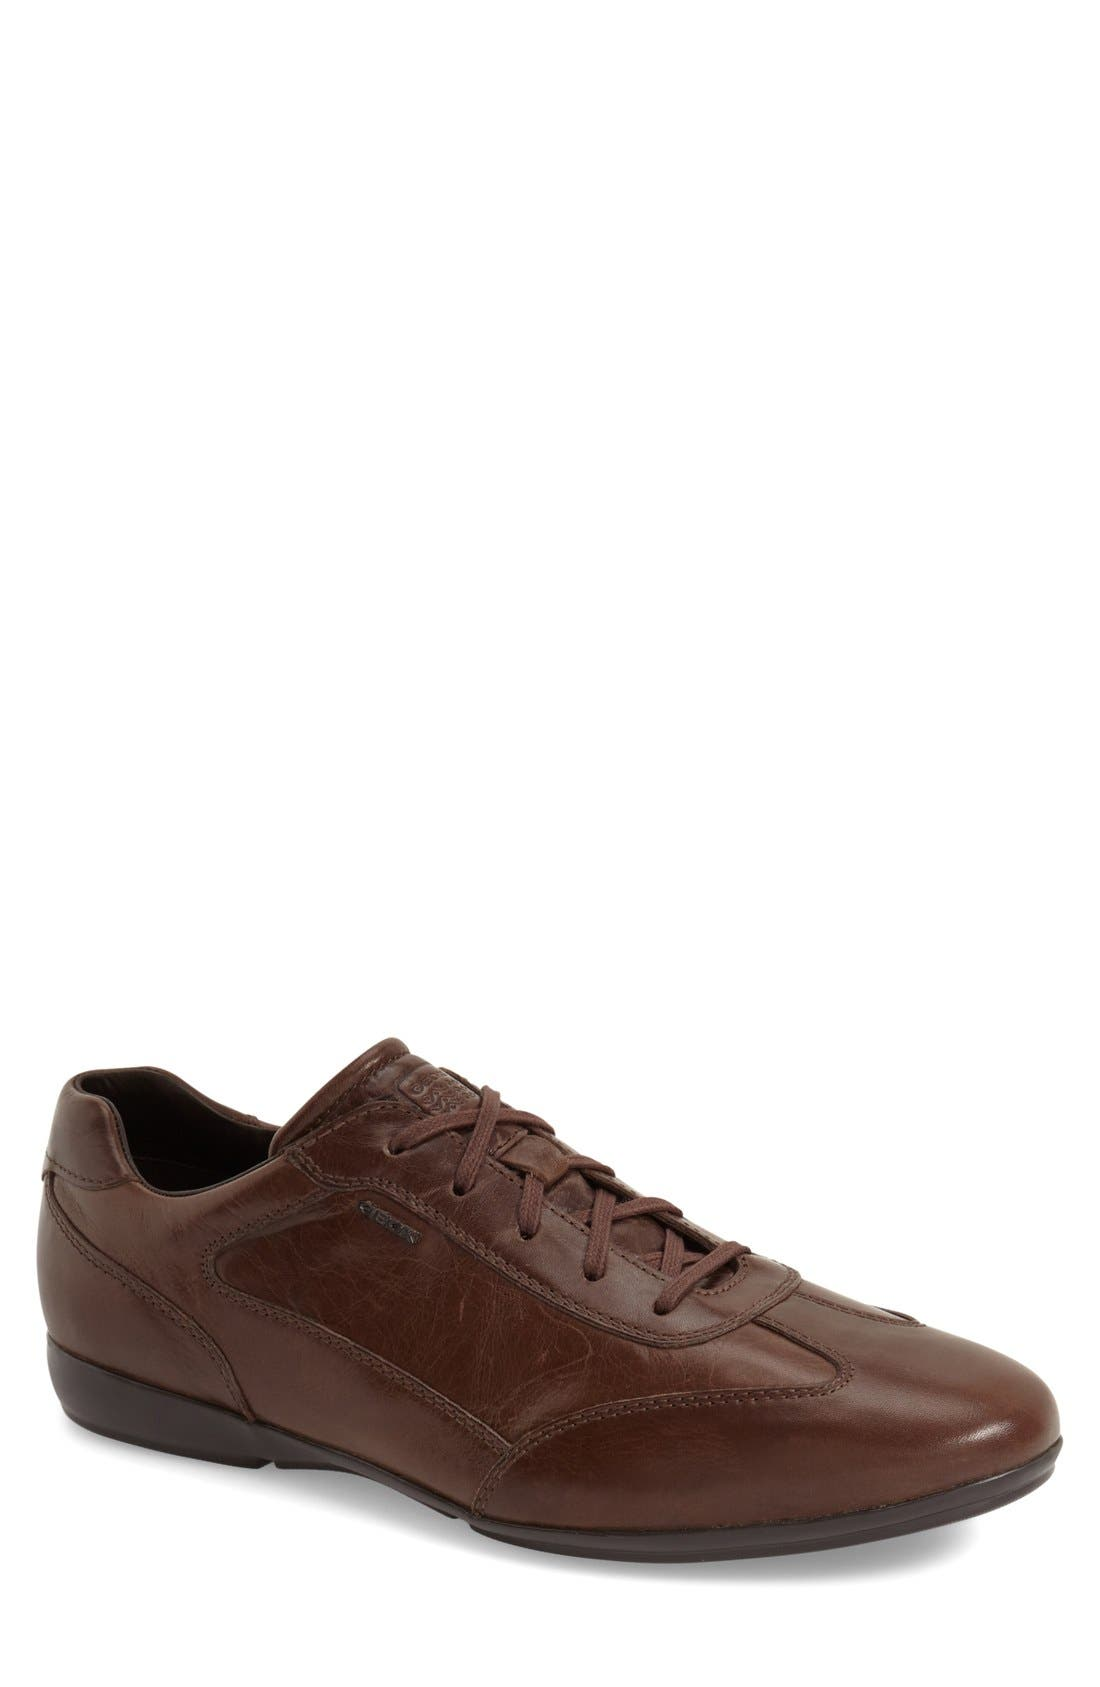 Alternate Image 1 Selected - Geox Wing Tip Oxford (Men)